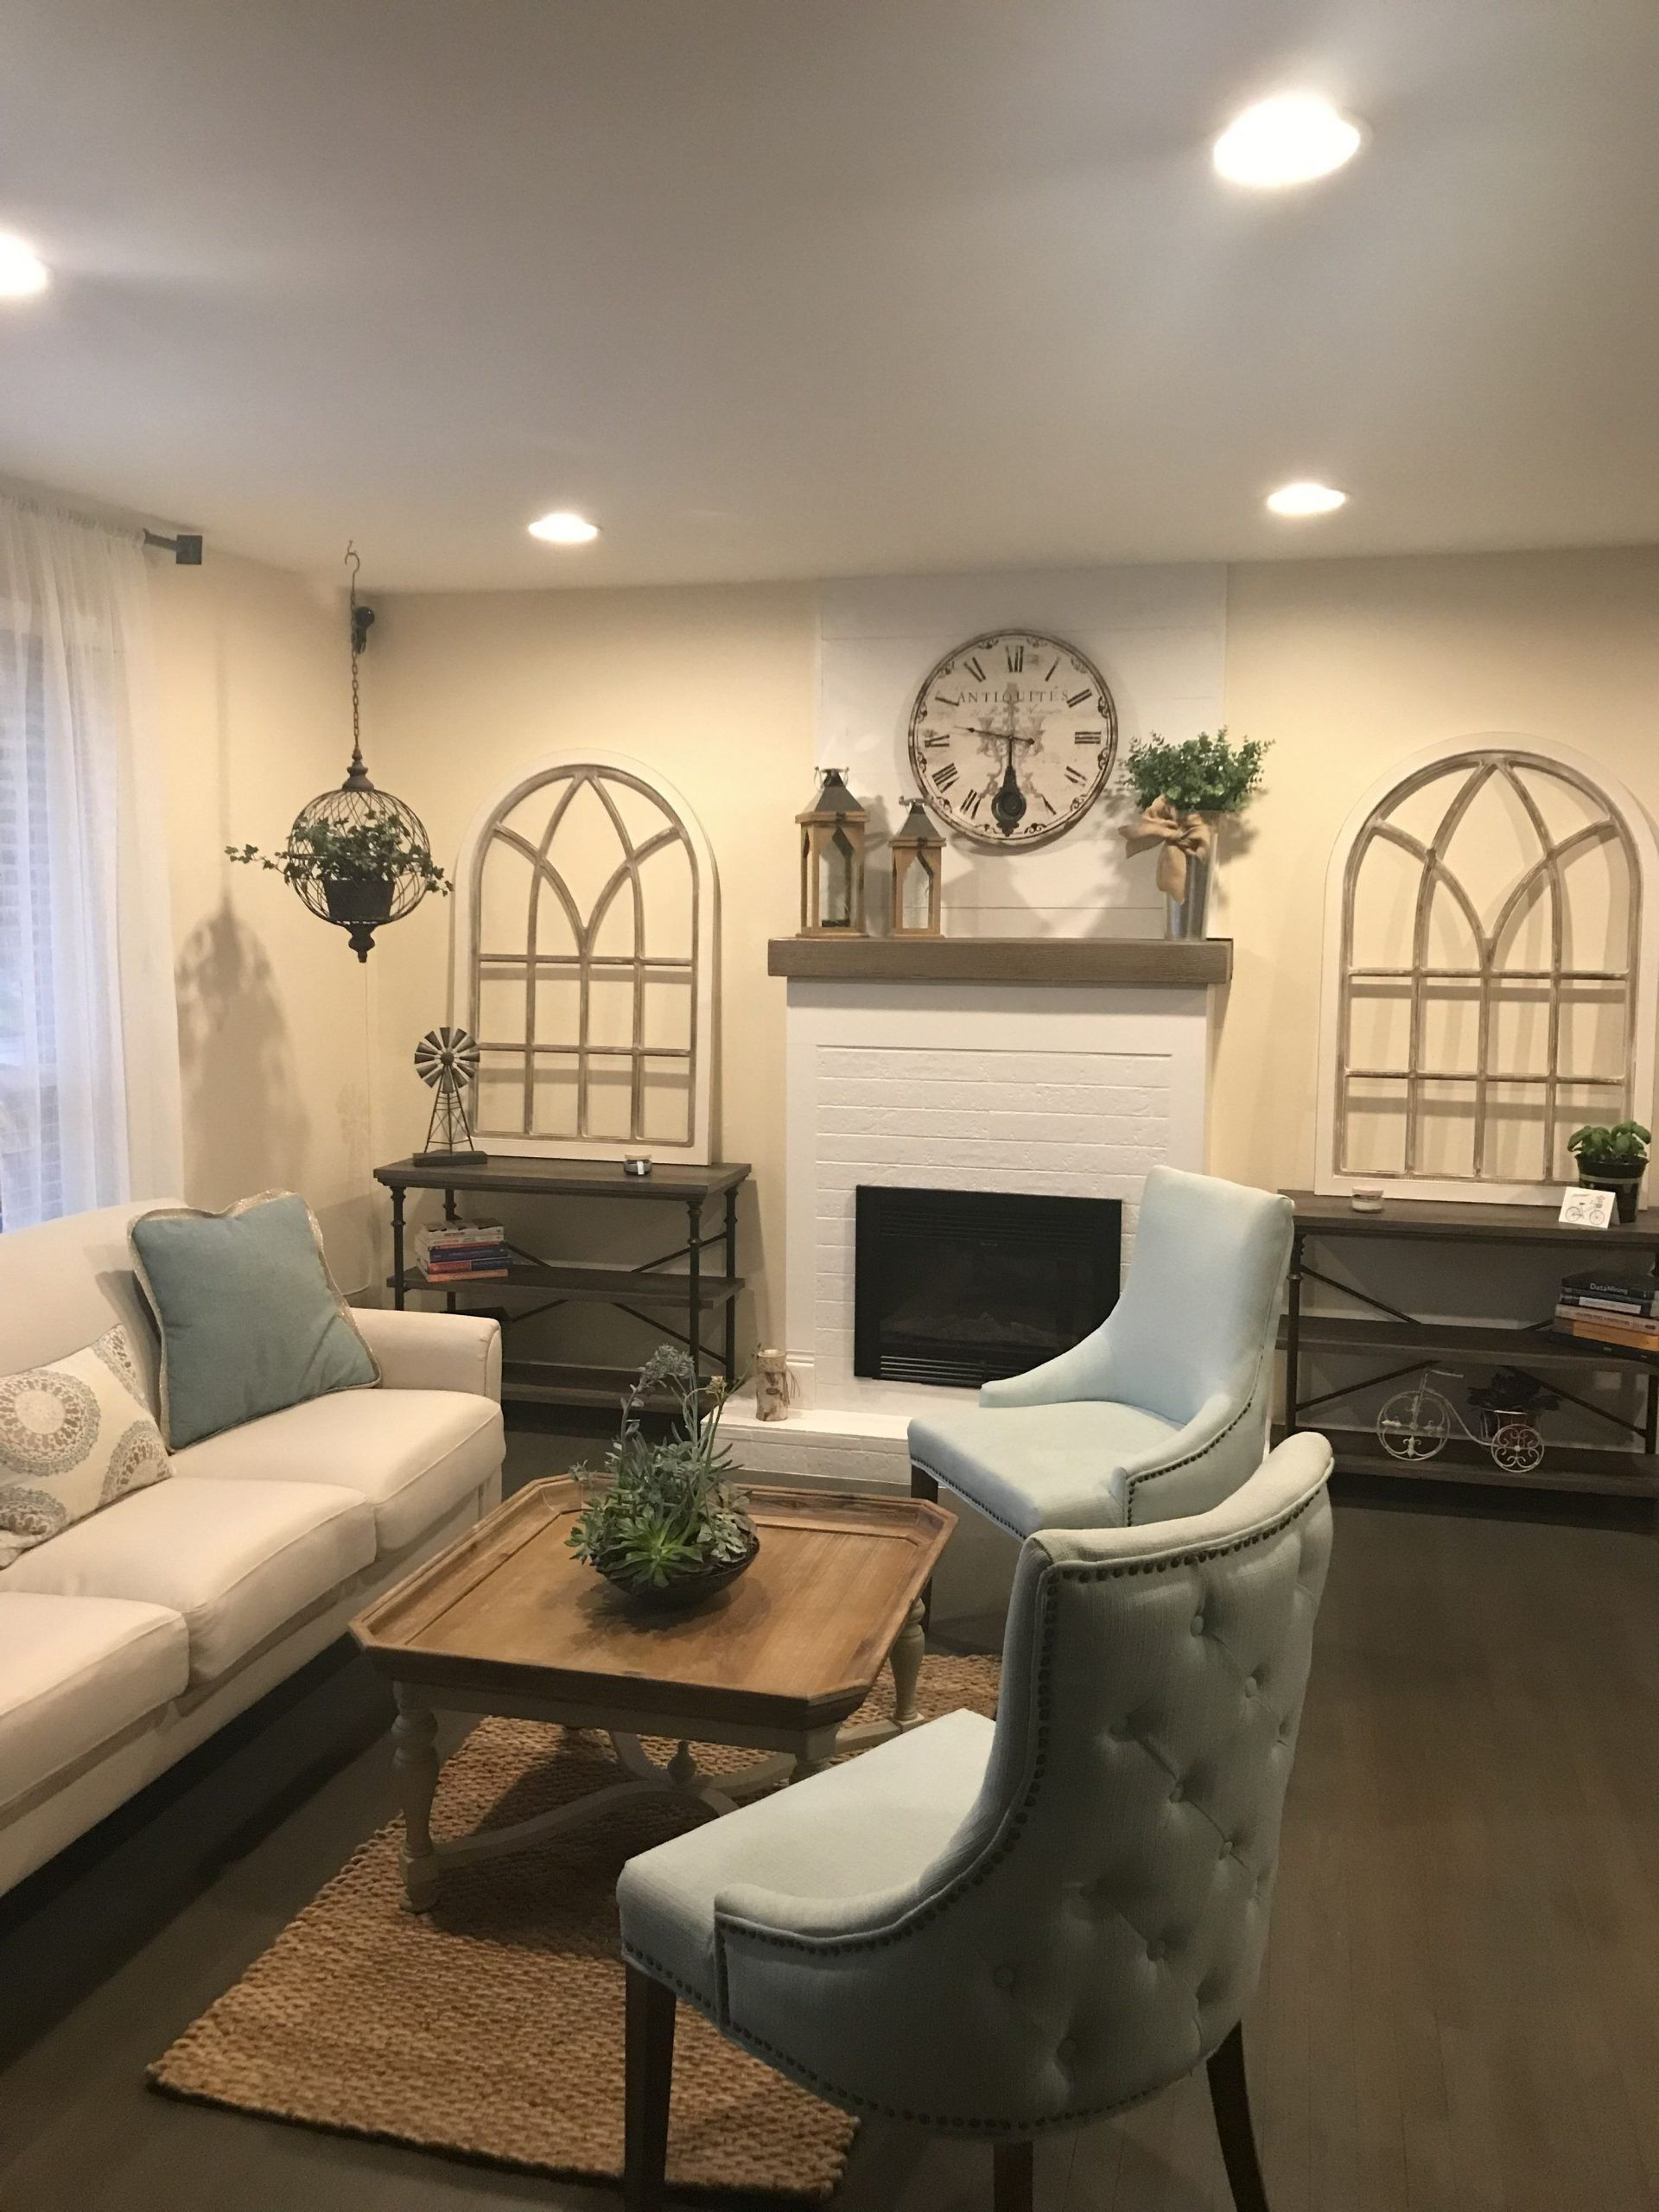 Pier One Imports Wall Decor Ivory Arch Wall Decor With Images In 2020 Beige Living Rooms Black Living Room Decor Farm House Living Room #pier #one #living #room #ideas